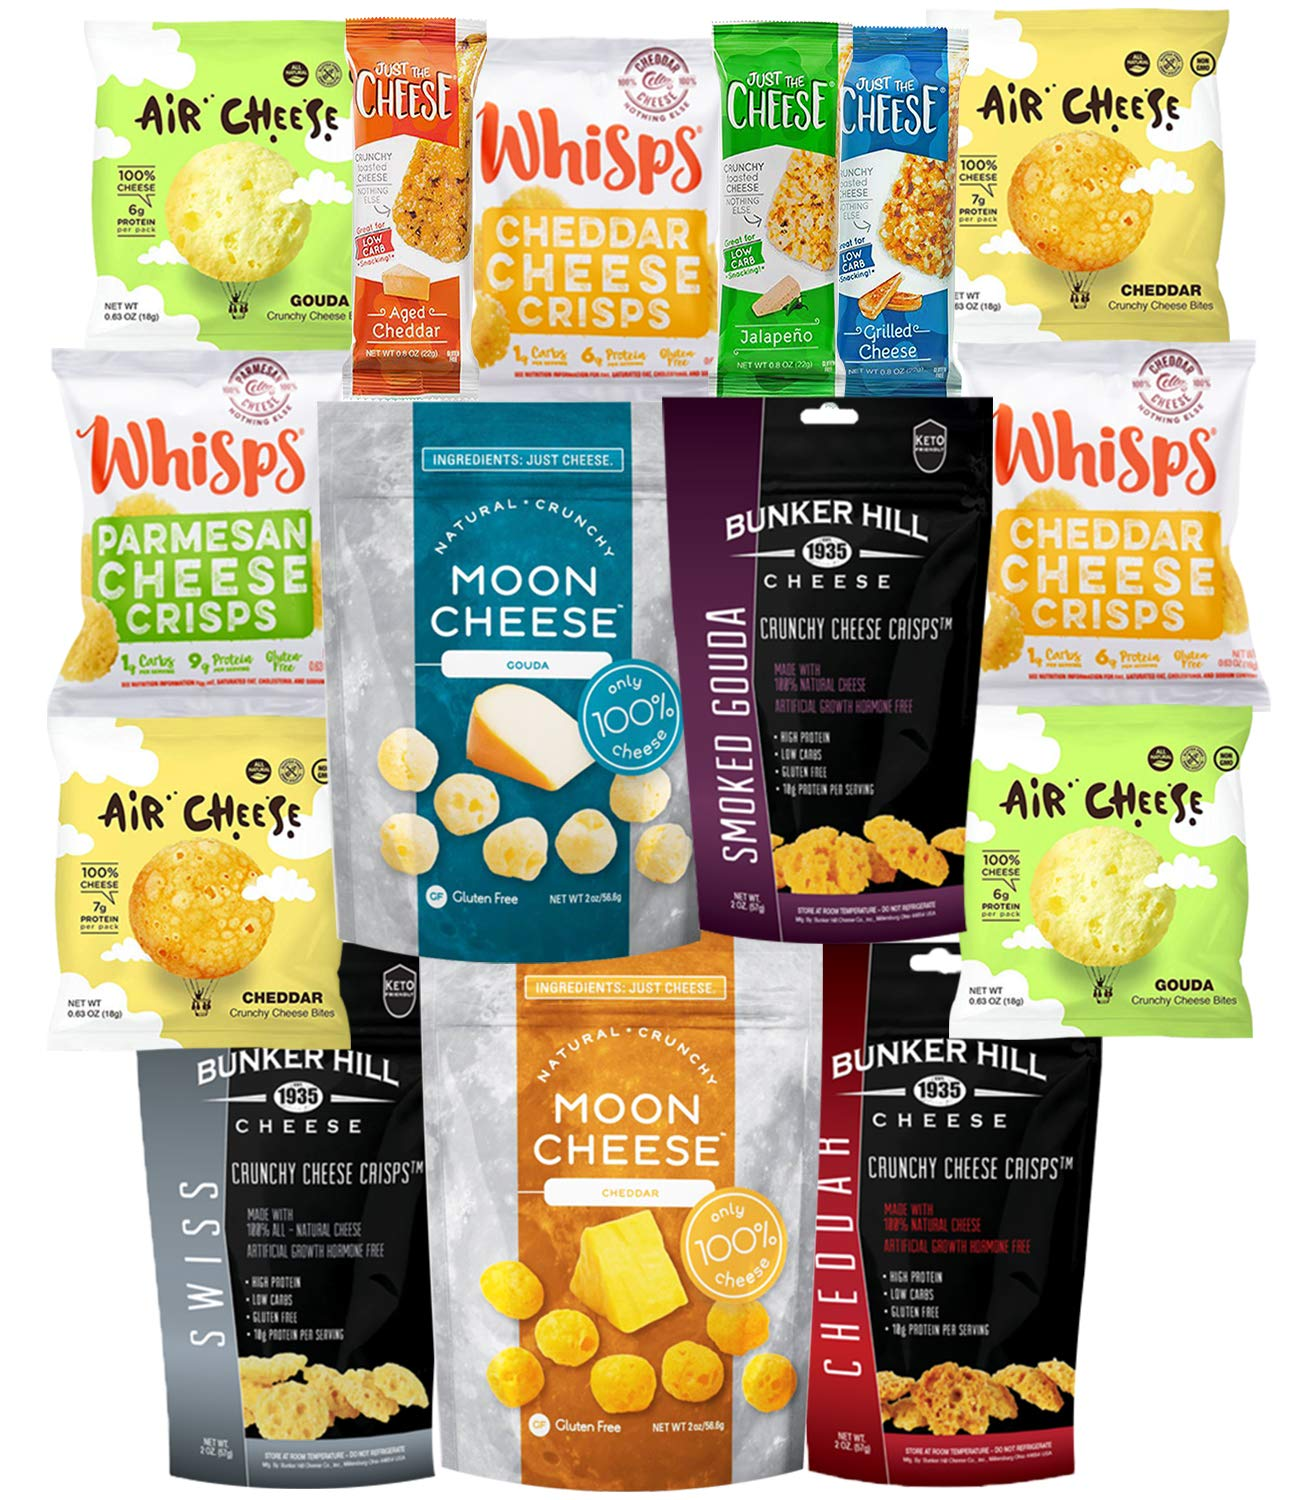 Keto Cheese Snacks Care Package Gift Box (15 Count) - Low Carb Snack - 1g Carbs or less -Ketogenic Friendly -Cello Whisps Cheese Crisps, Just The Cheese Bars, Moon Cheese, Bunker Hill -Variety Flavors